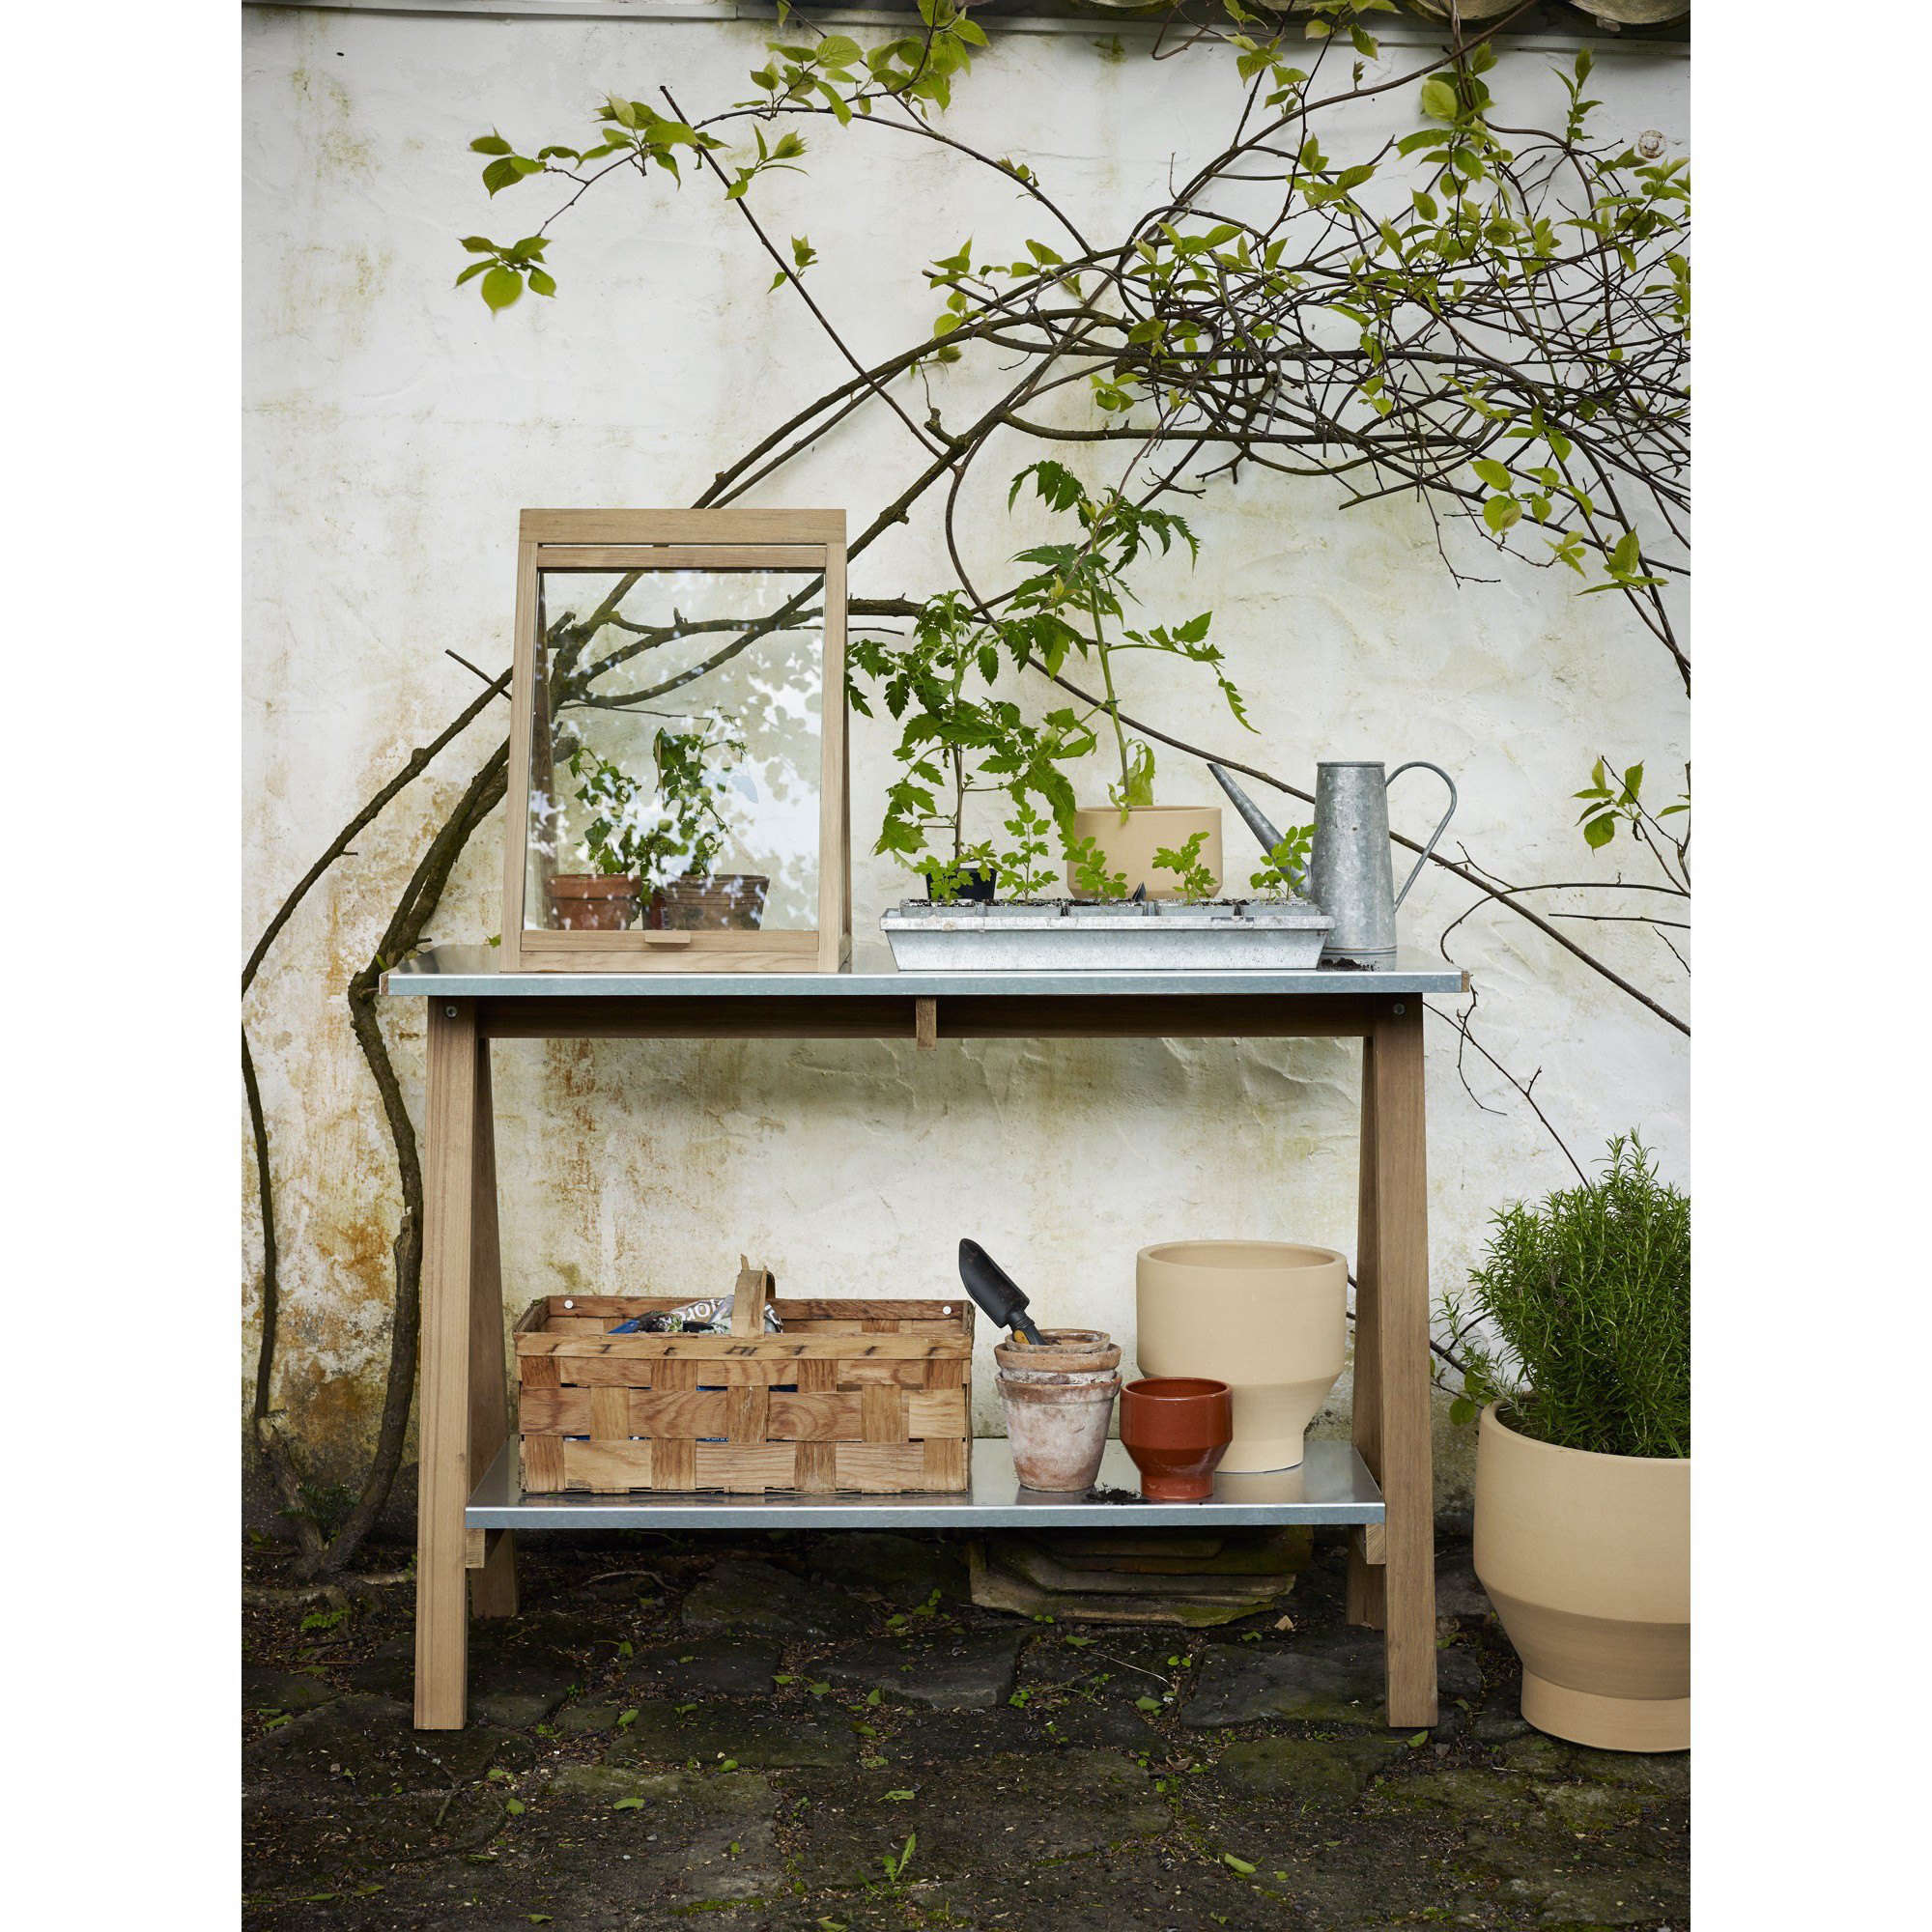 With A Teak Frame, A Steel Plant Tray, And A Glass Front Panel That Lifts  Up Like A Lid, A Tiny Tabletop Greenhouse From Copenhagen Based Designer  Mia ...